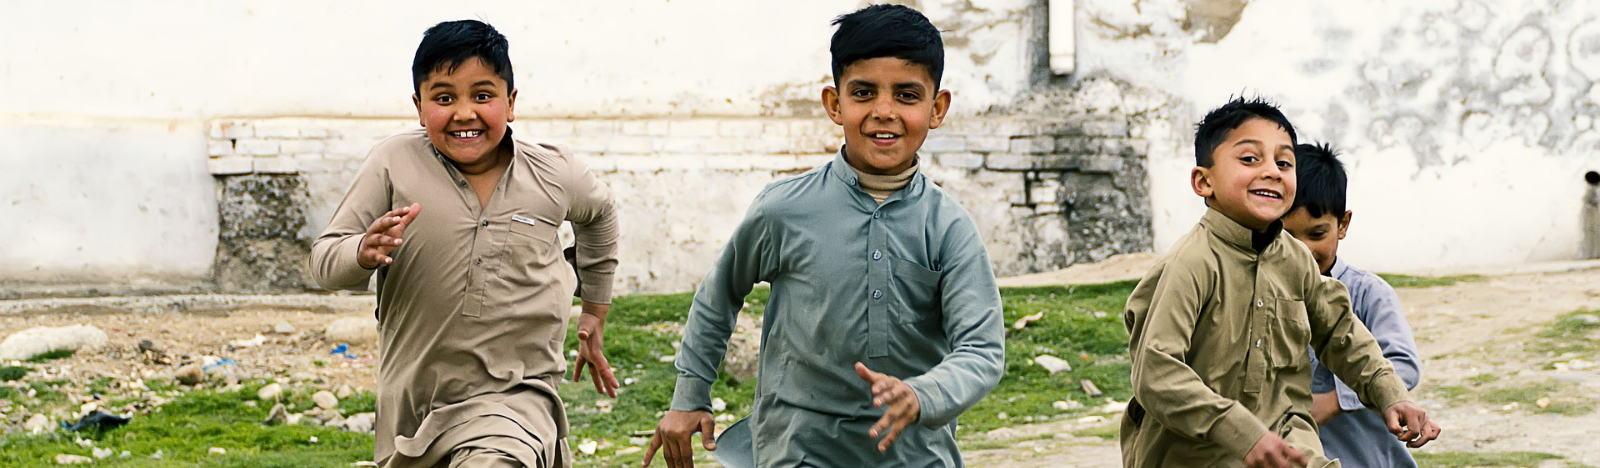 Four boys in Pakistan playing and running towards the camera